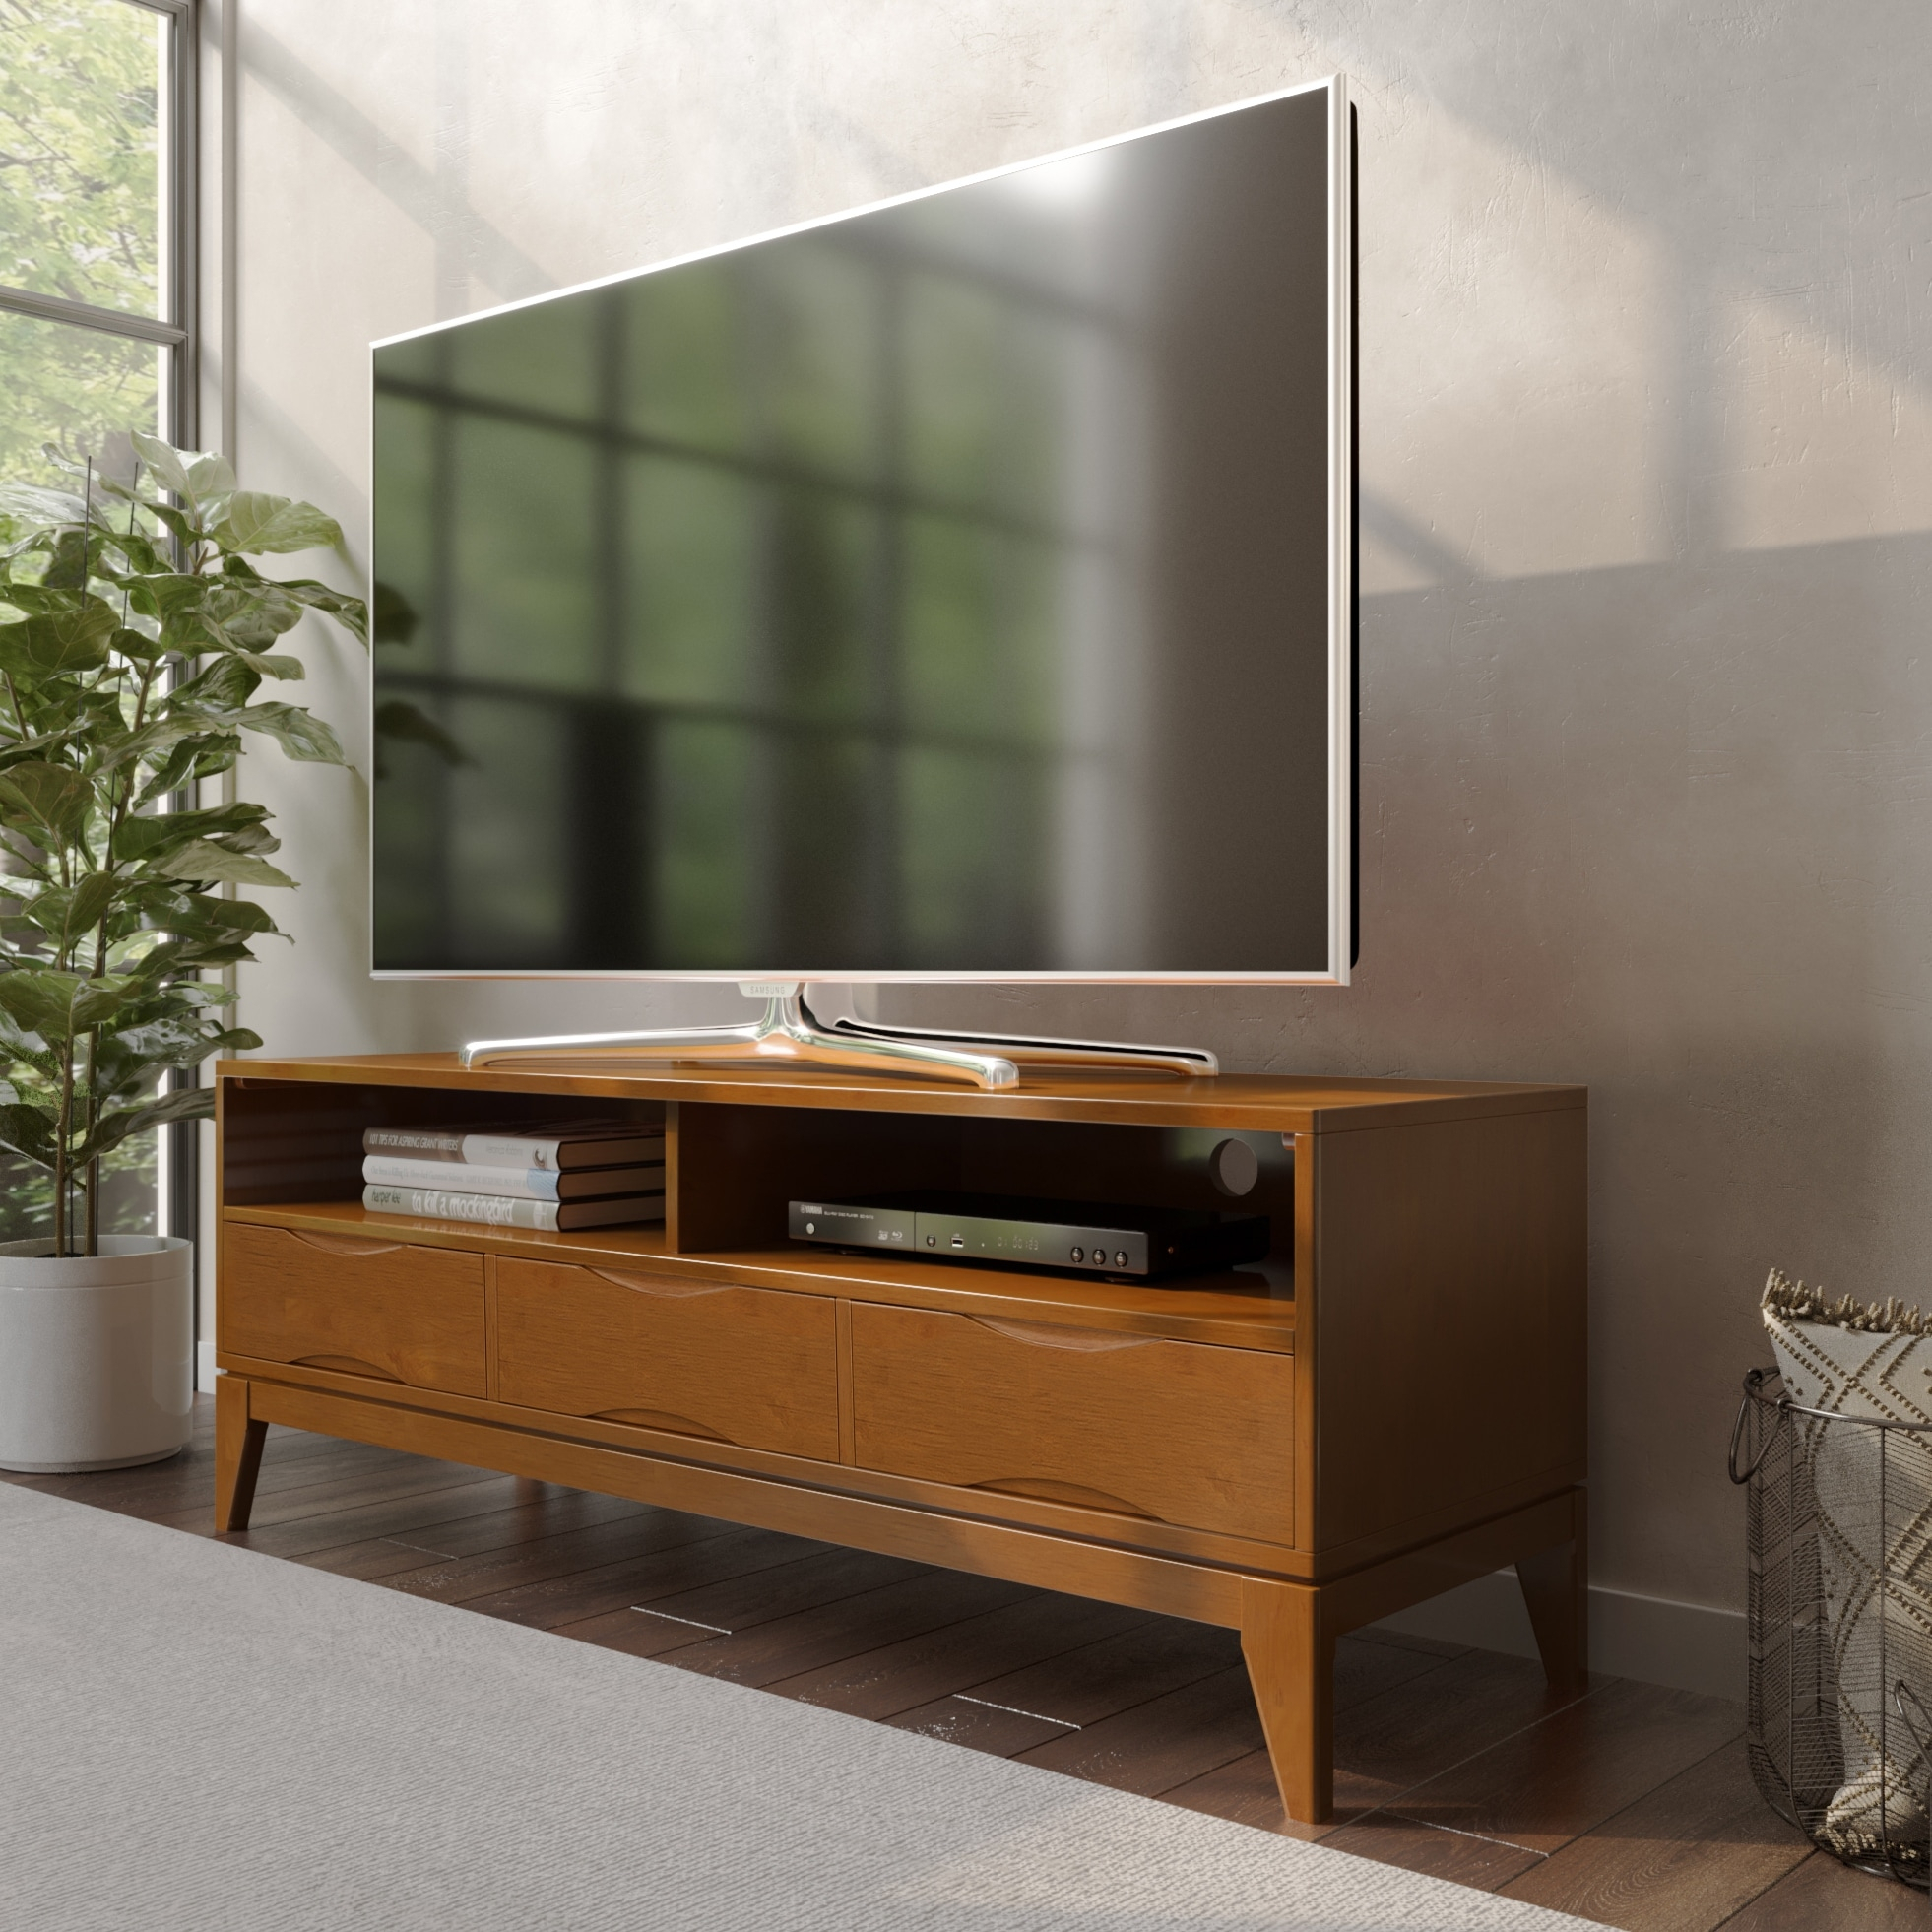 Wyndenhall Pearson Solid Hardwood 60 Inch Wide Mid Century Regarding Baby Proof Contemporary Tv Cabinets (View 6 of 15)